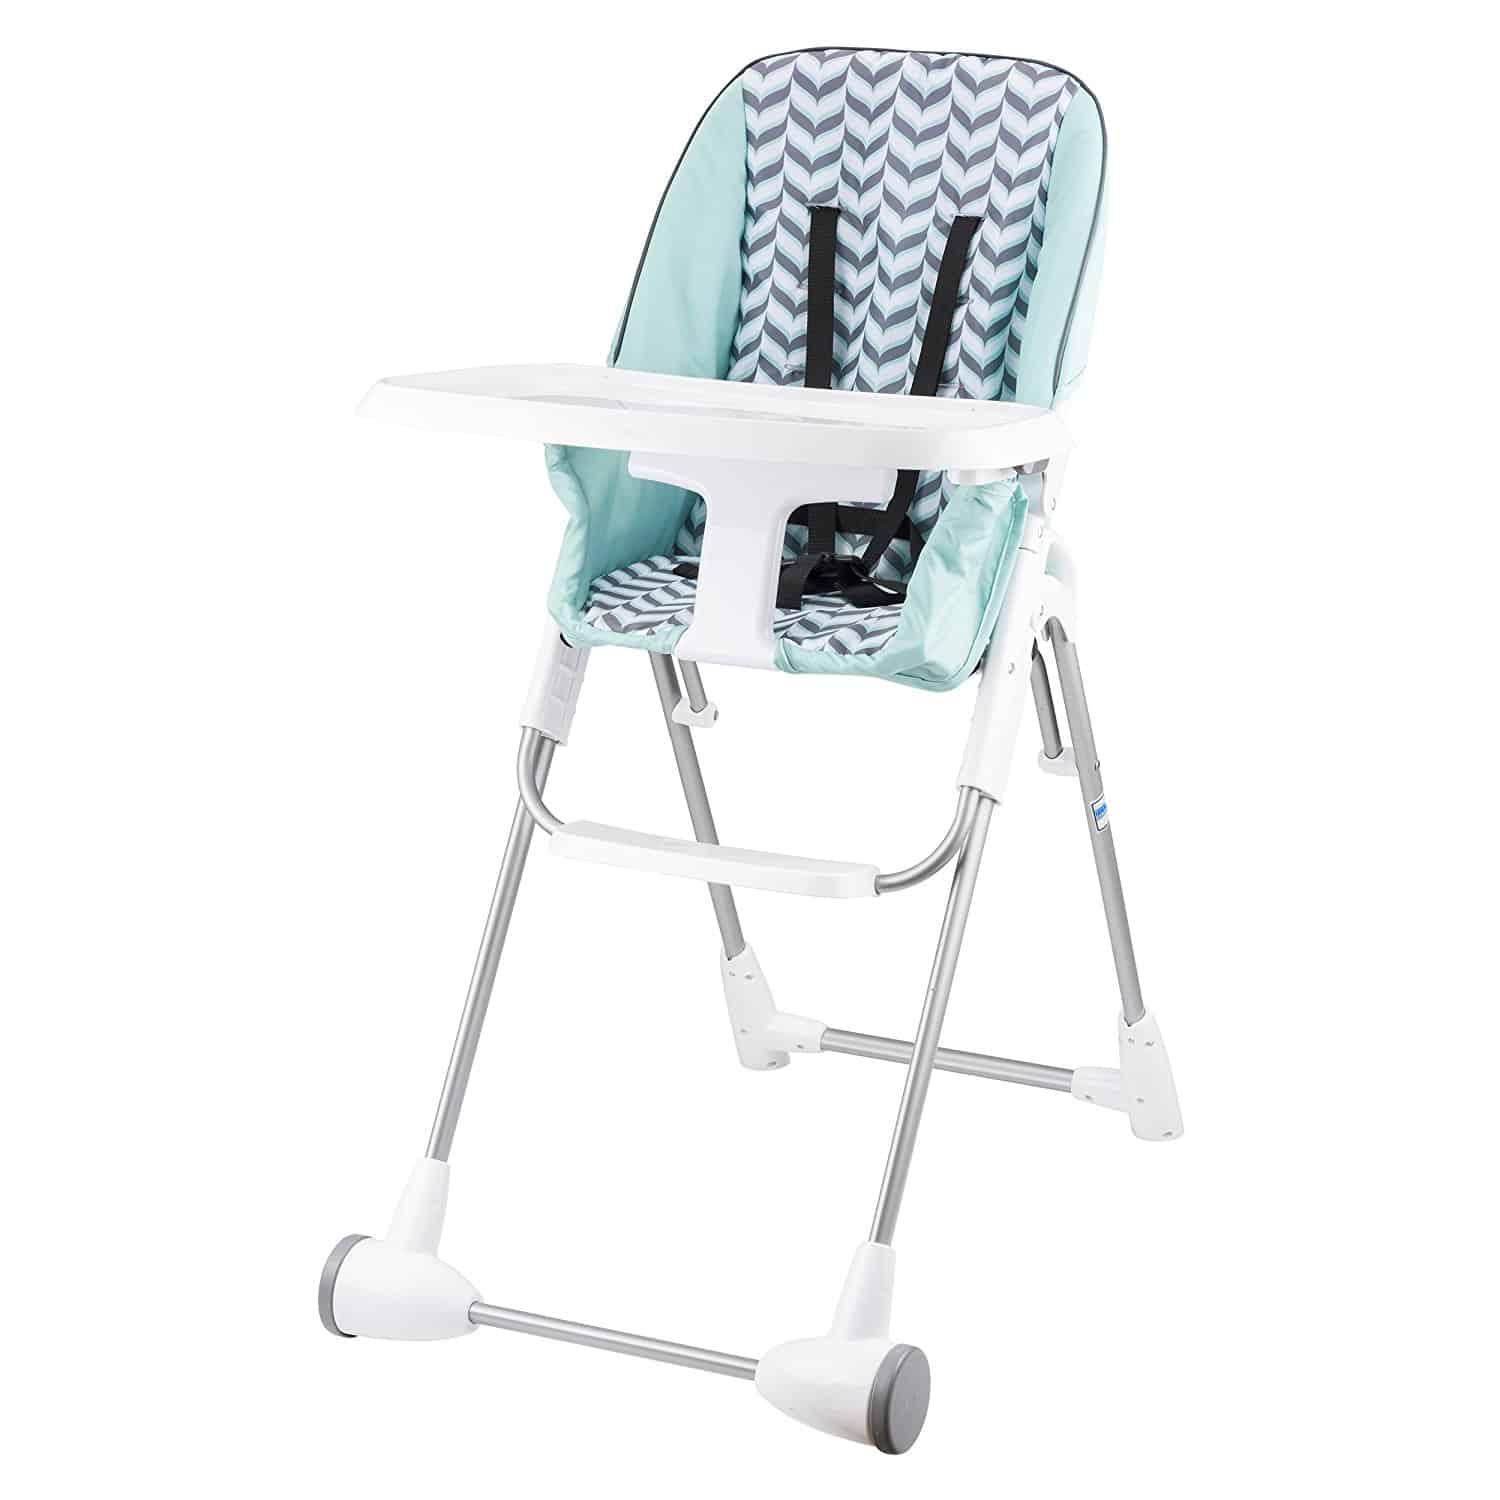 High Chair brand review Evenflo